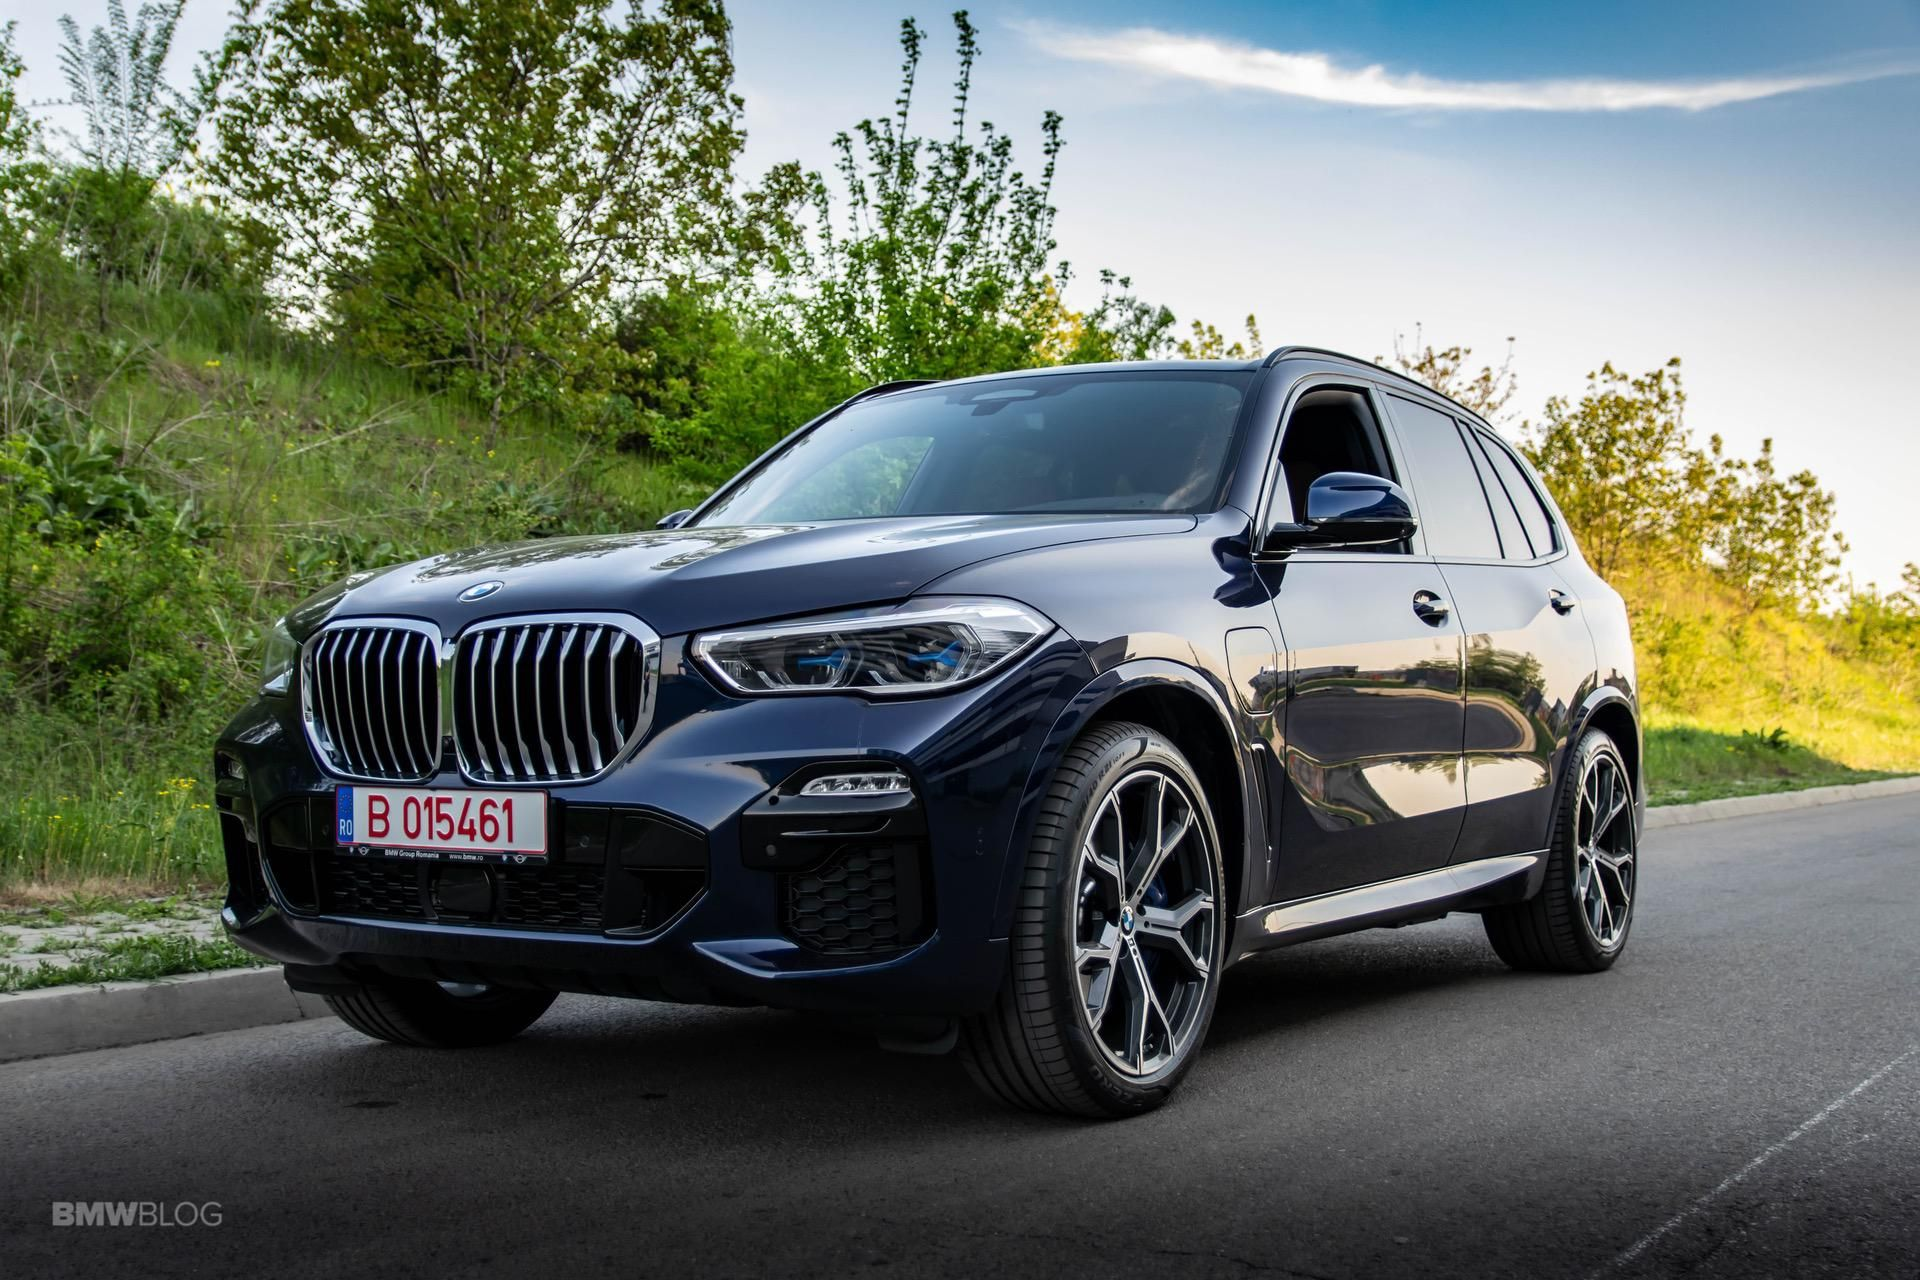 Bmw Malaysia Launches Ar App For New X5 Xdrive45e Model Bmwfiend Com In 2020 Bmw New X5 New Bmw